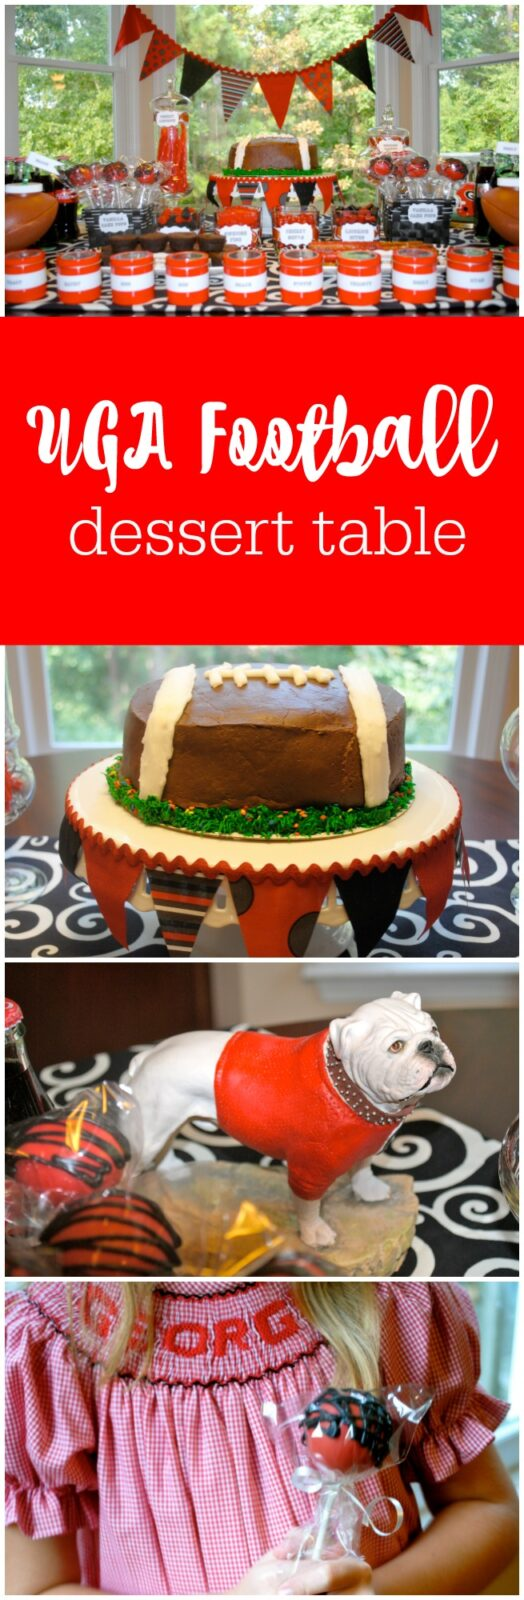 UGA Football Dessert Table by The Party Teacher-1